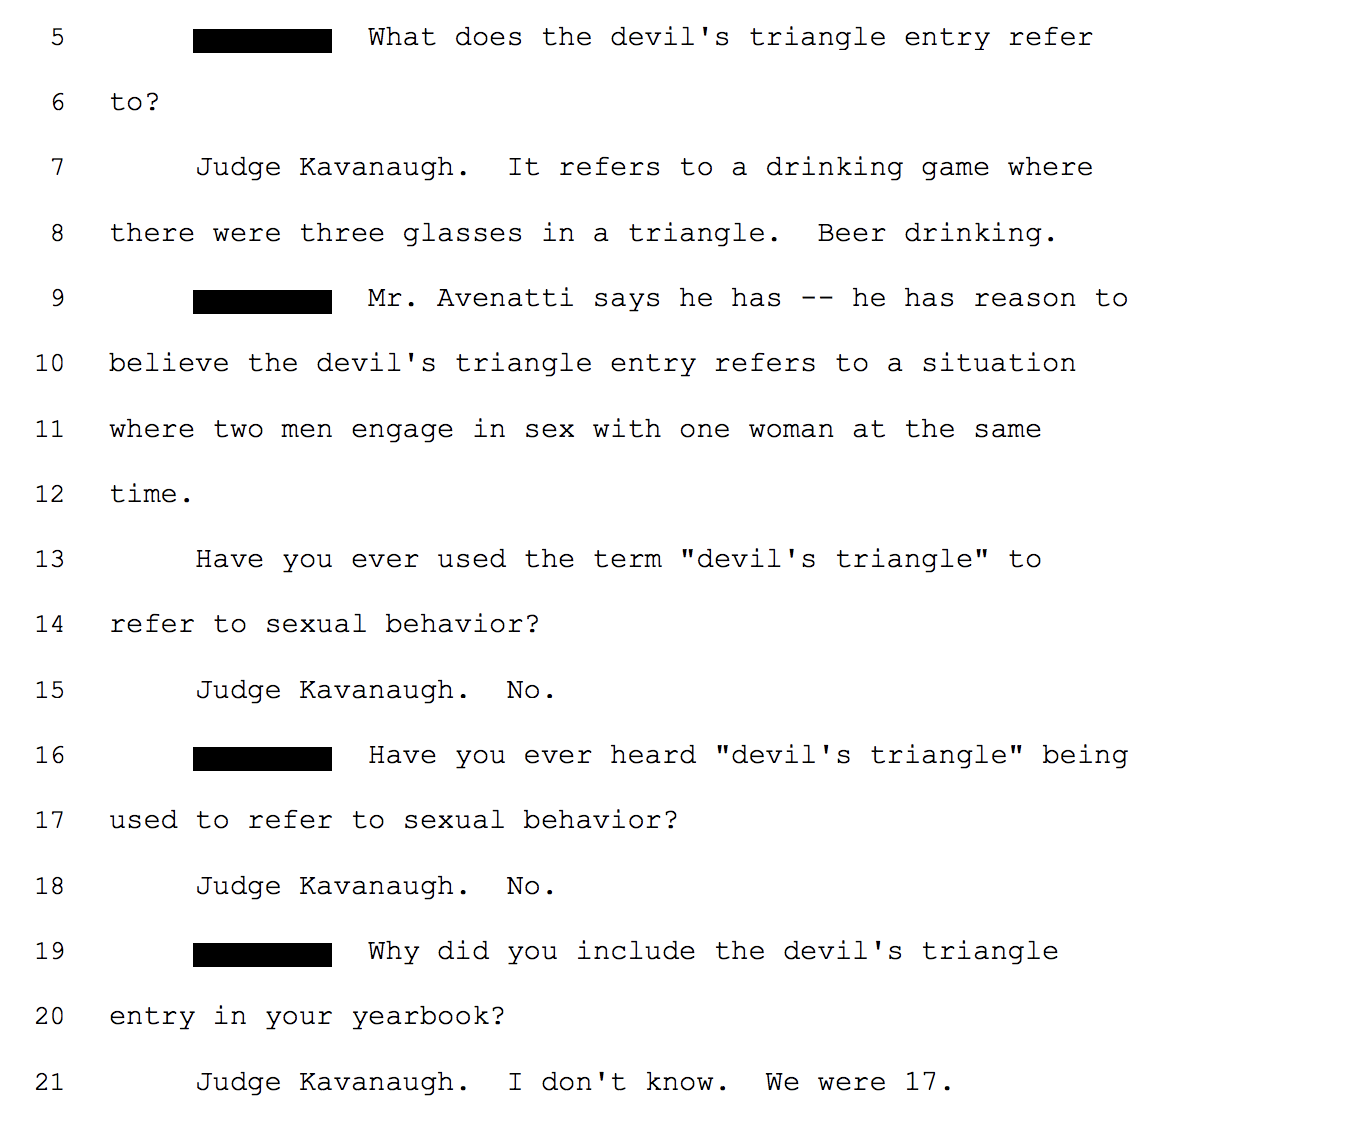 Judge Kavanaugh responds to the Devil's Triangle yearbook entry. (Screenshot)